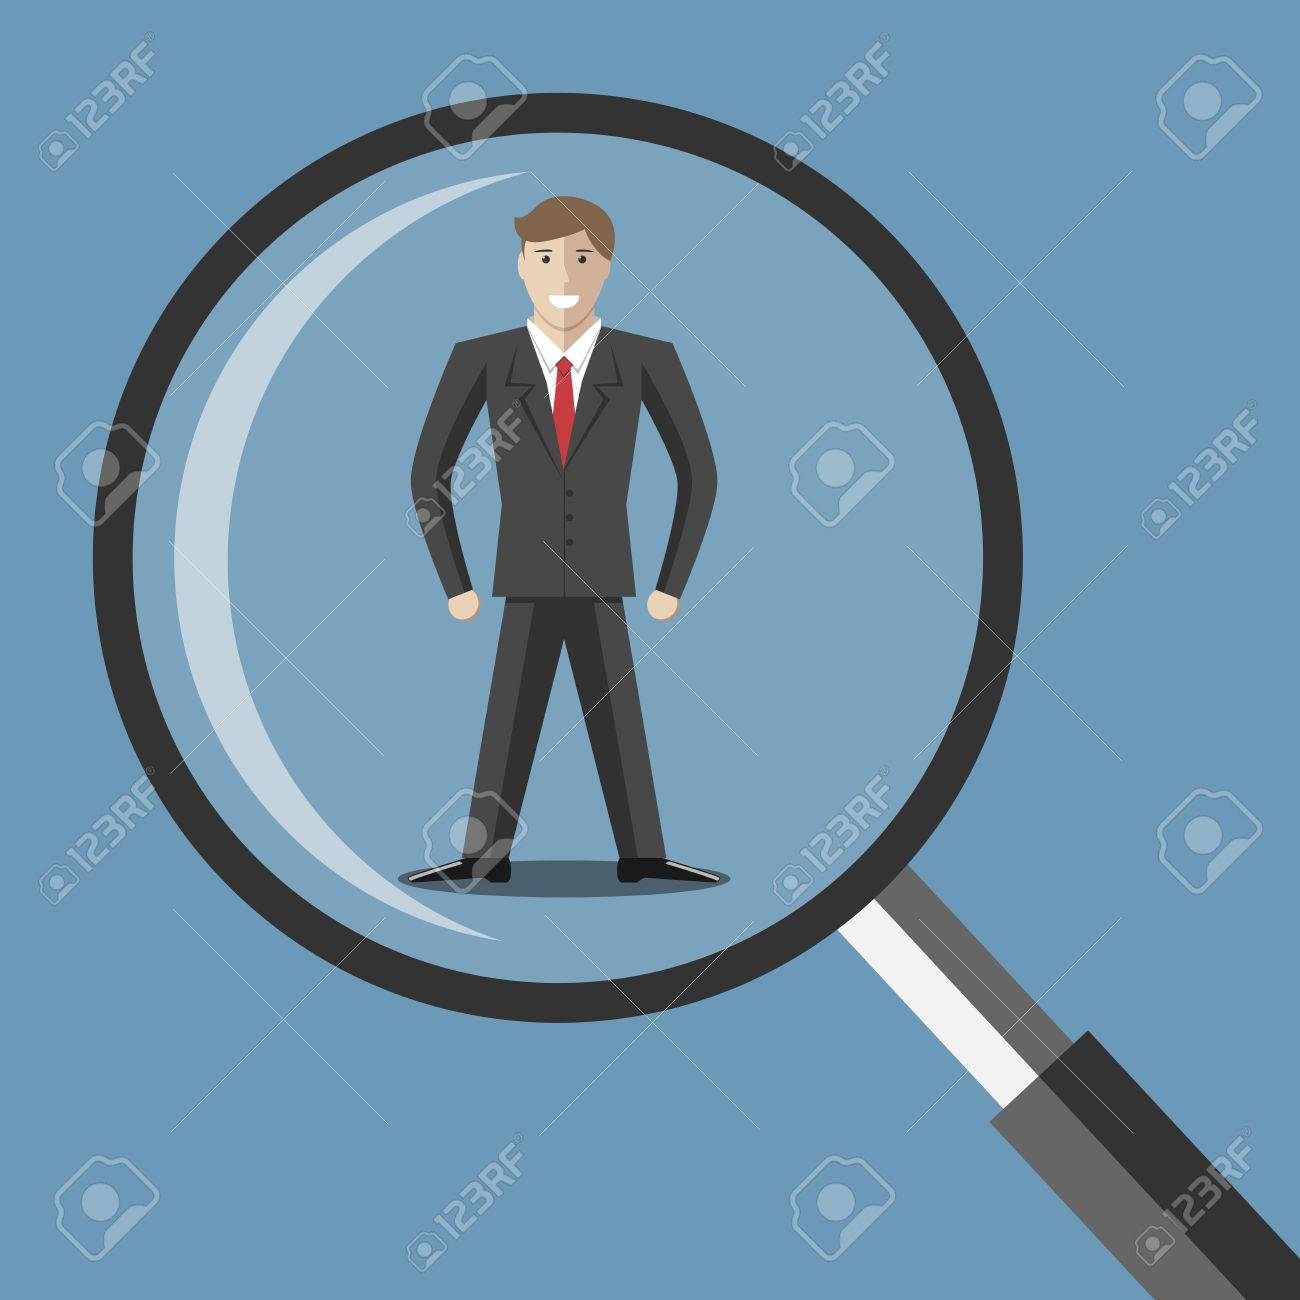 young man under magnifying glass choice selection hiring analysis choice selection hiring analysis interview employee job staff recruitment concept eps 10 vector illustration transparency used